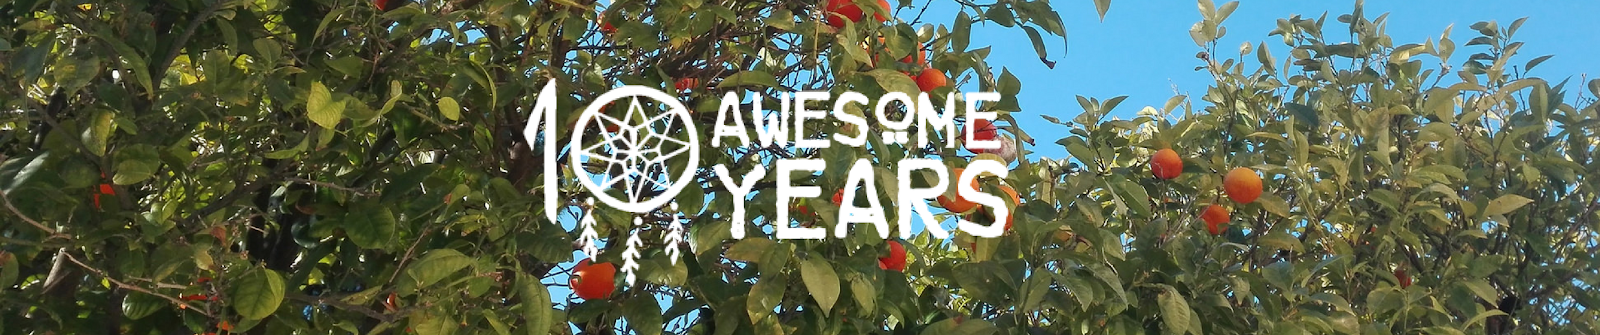 Ten Awesome Years